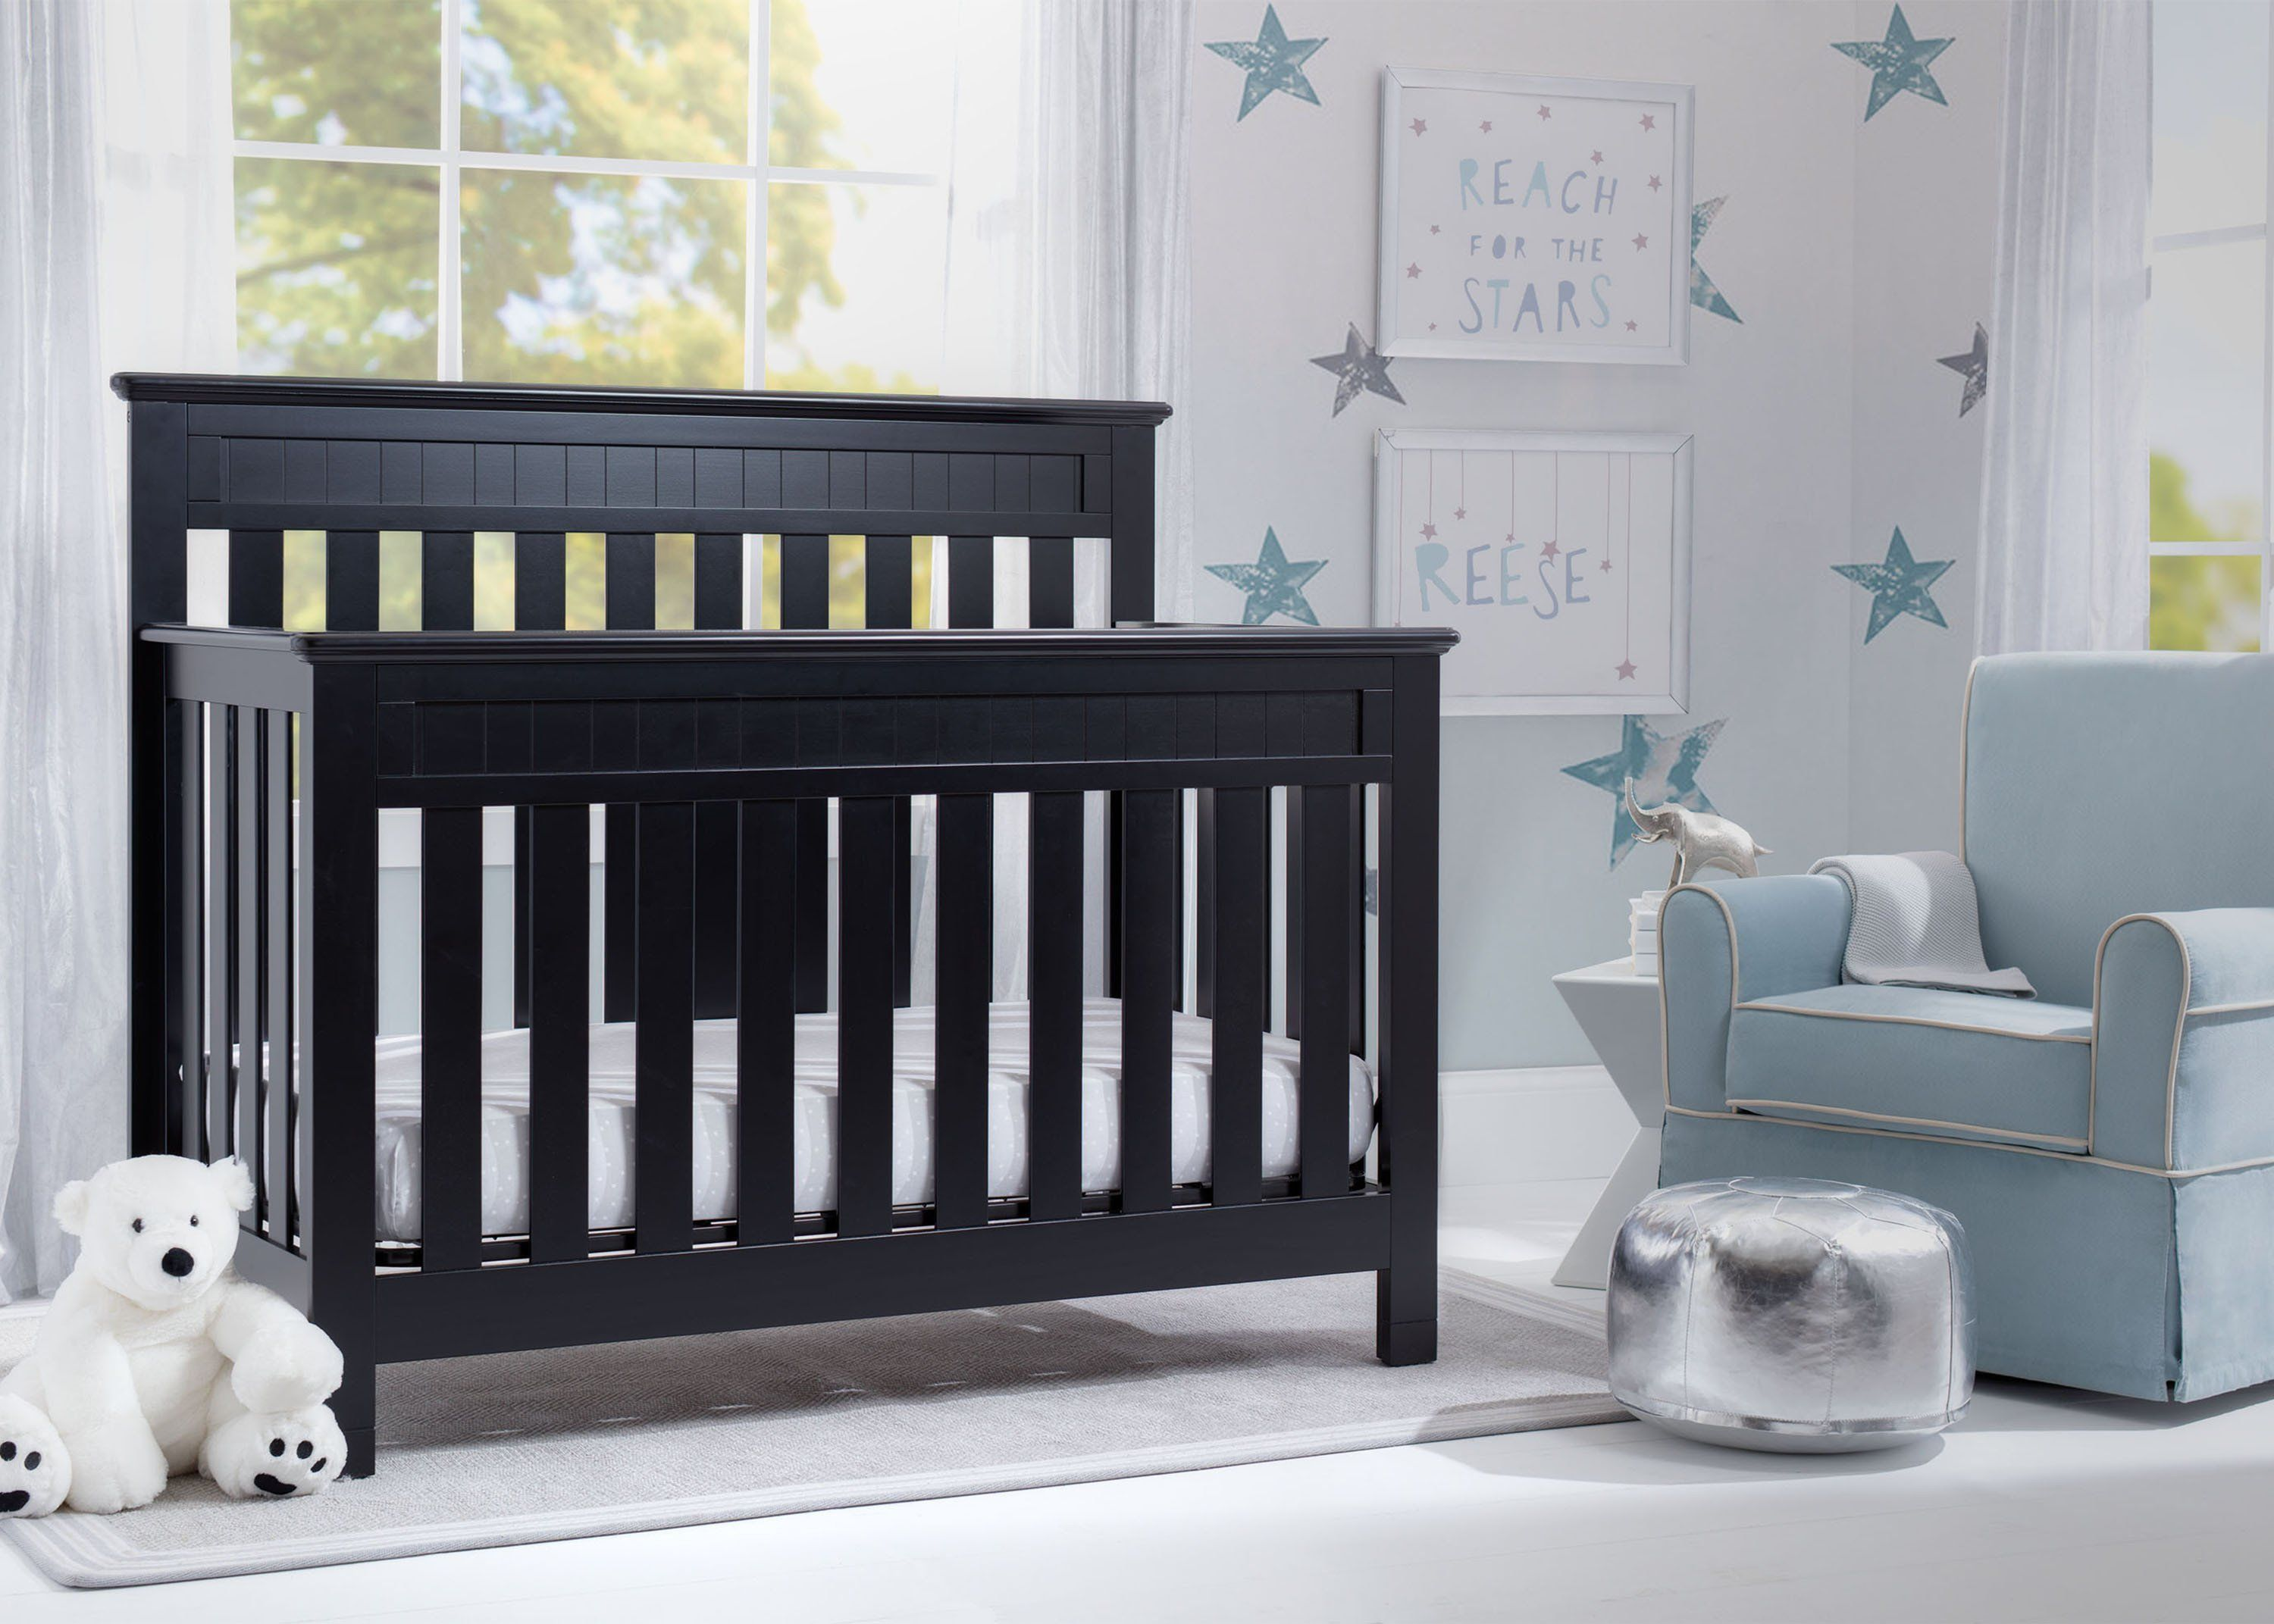 Delta Children Black (001) Chalet 4-in-1 Crib, room view, c1c